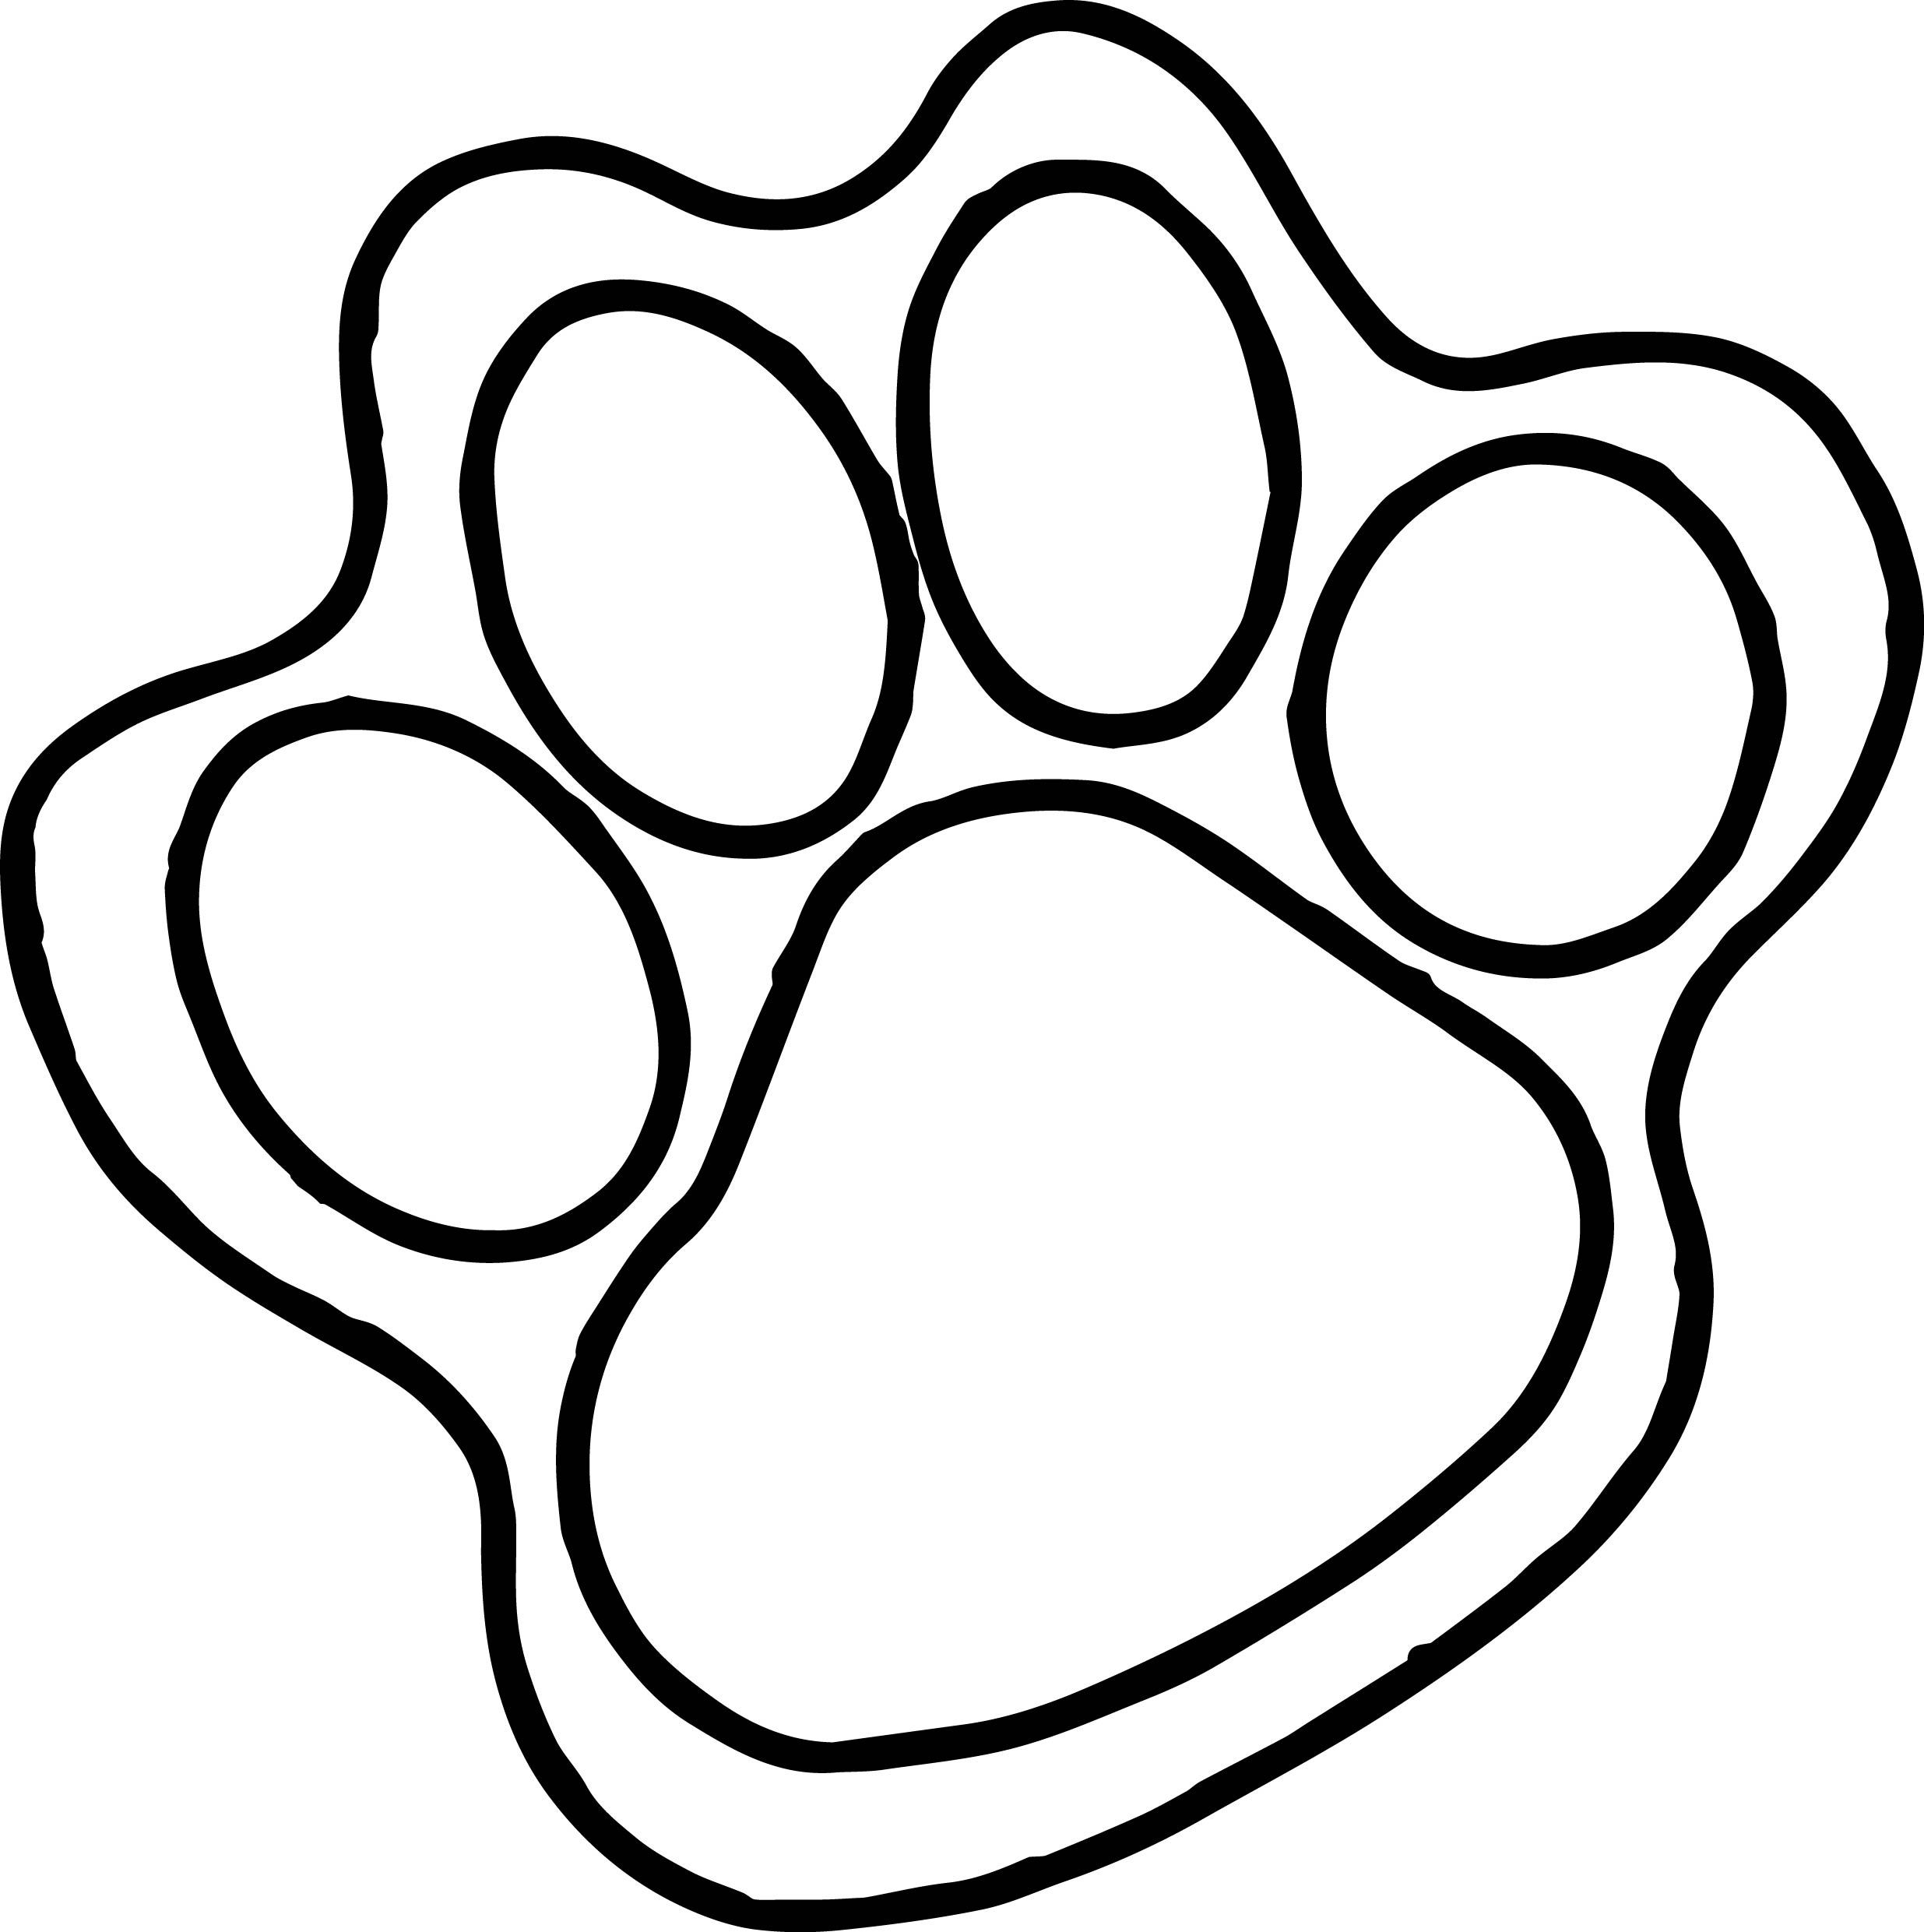 Tiger Foot Print Coloring Page